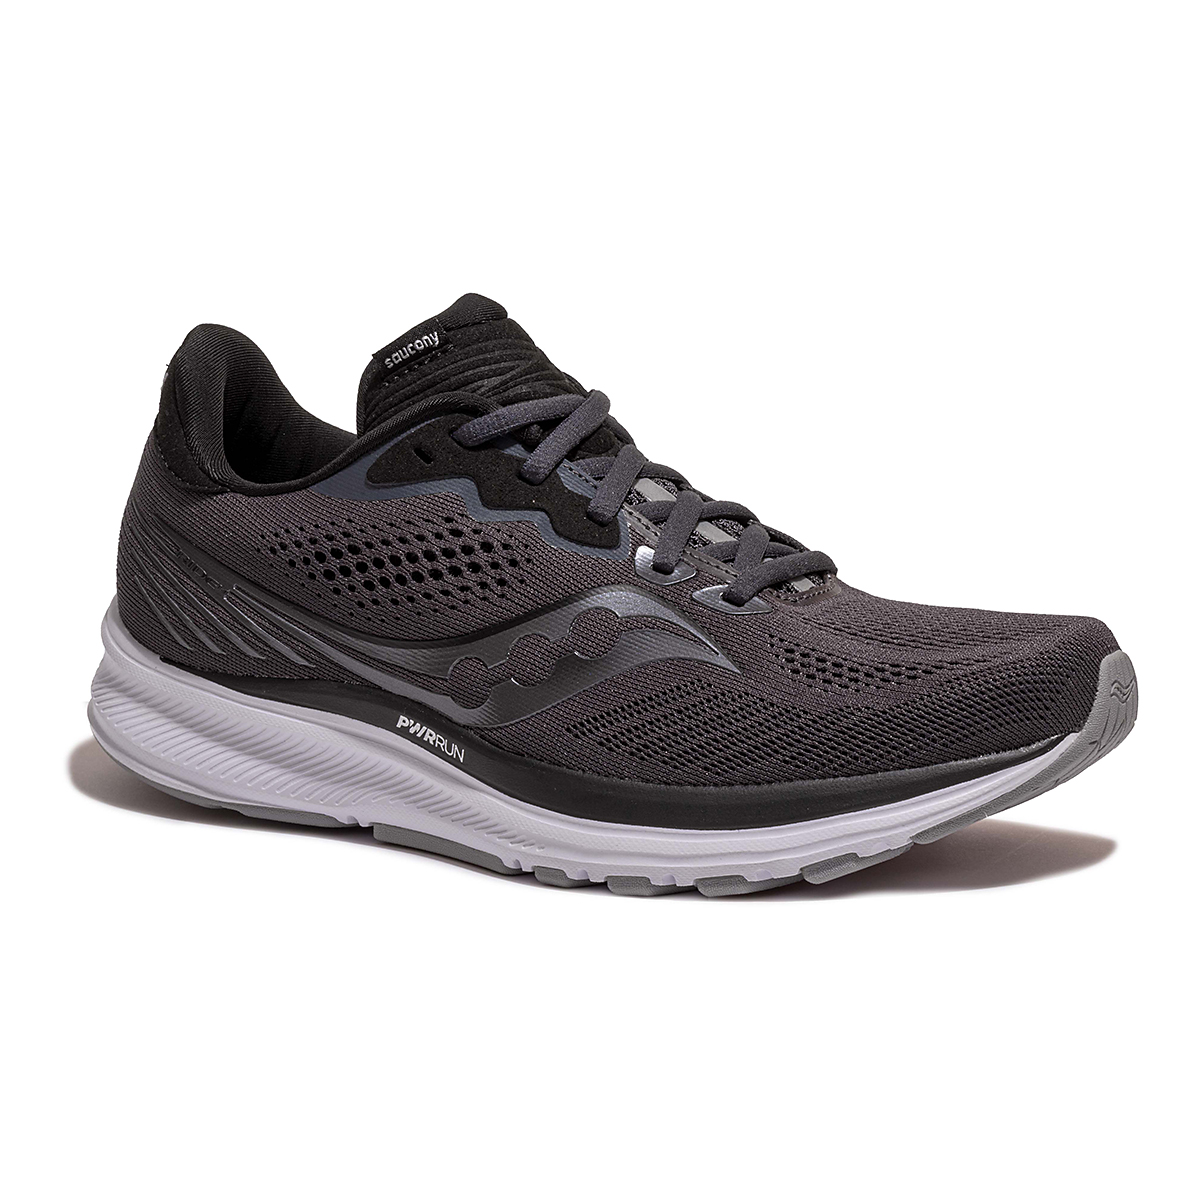 Women's Saucony Ride 14 Running Shoe - Color: Charcoal/Black - Size: 5 - Width: Wide, Charcoal/Black, large, image 5